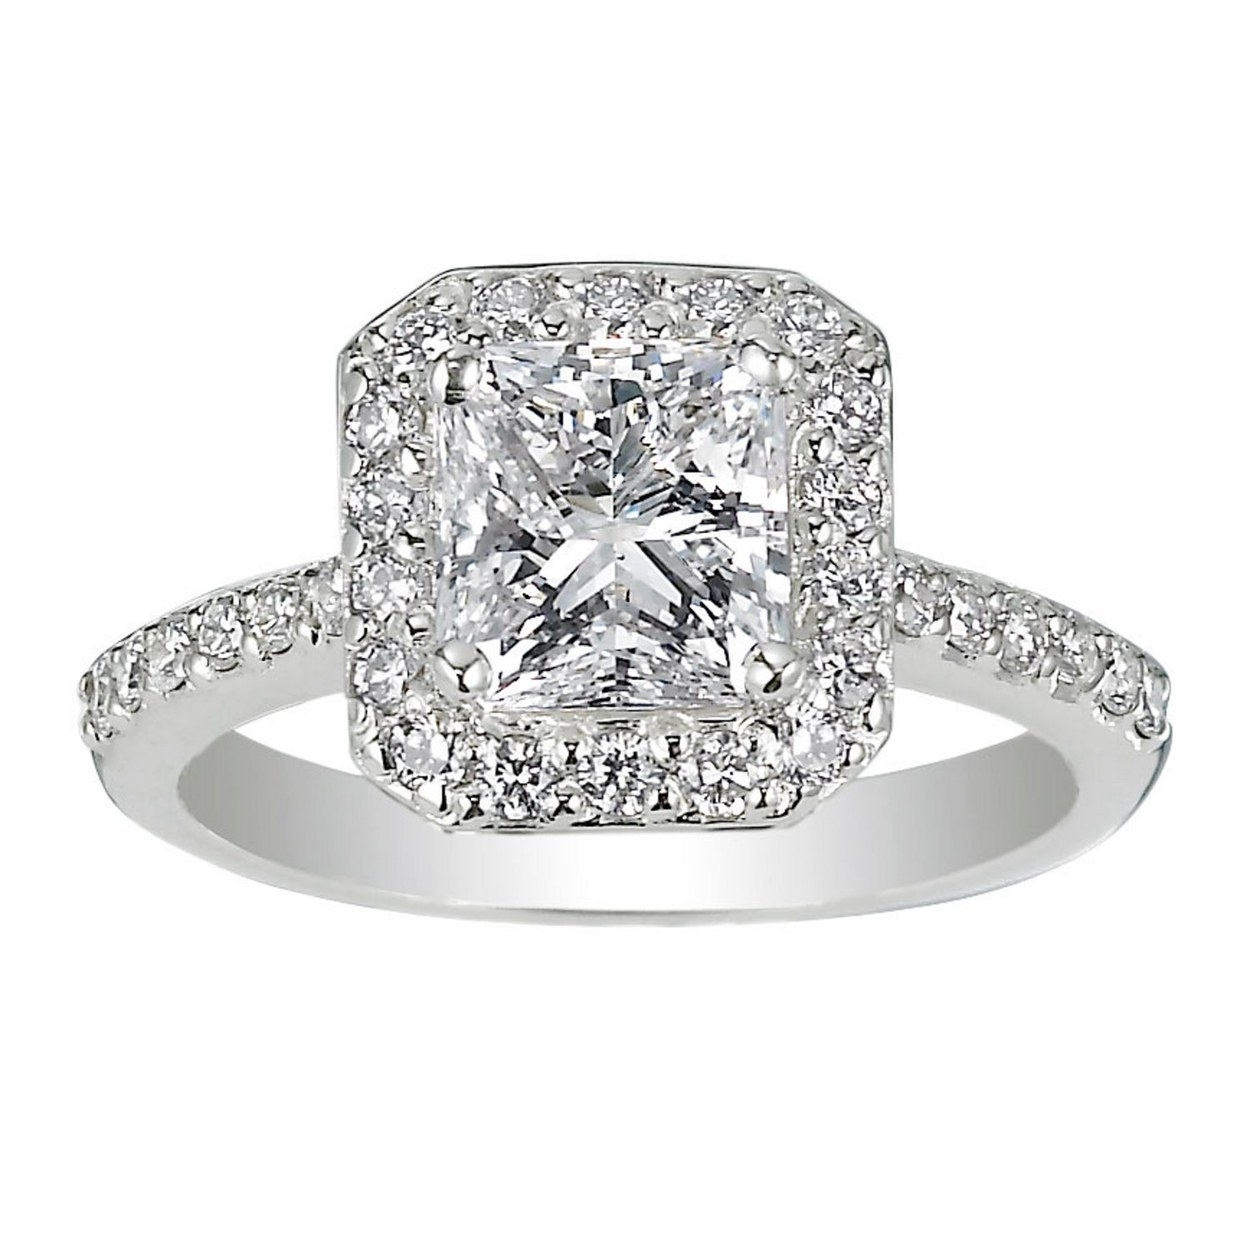 62 Diamond Engagement Rings Under $5,000 | Glamour Regarding 2018 Diamond Eleven Stone Vintage Style Anniversary Bands (View 15 of 15)